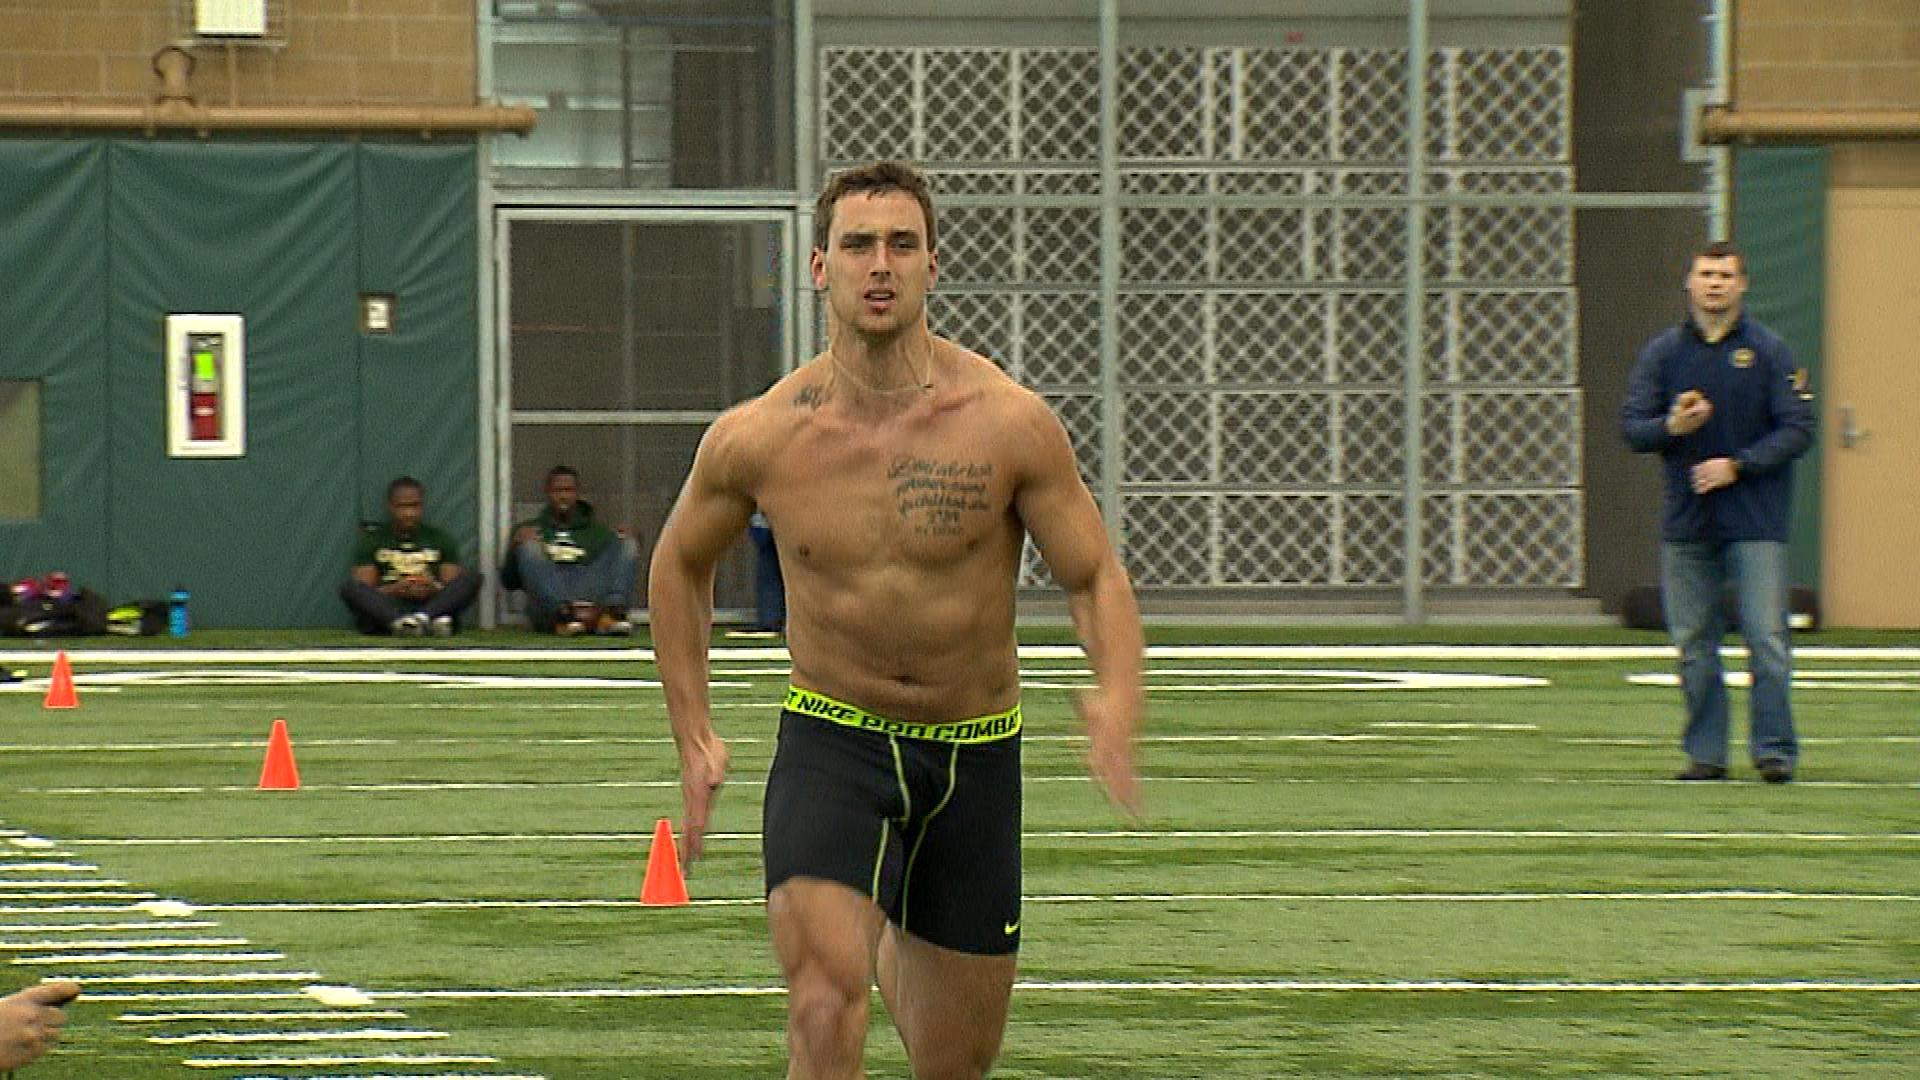 Garrett Grayson during his pro day in Fort Collins last month. (credit: CBS)